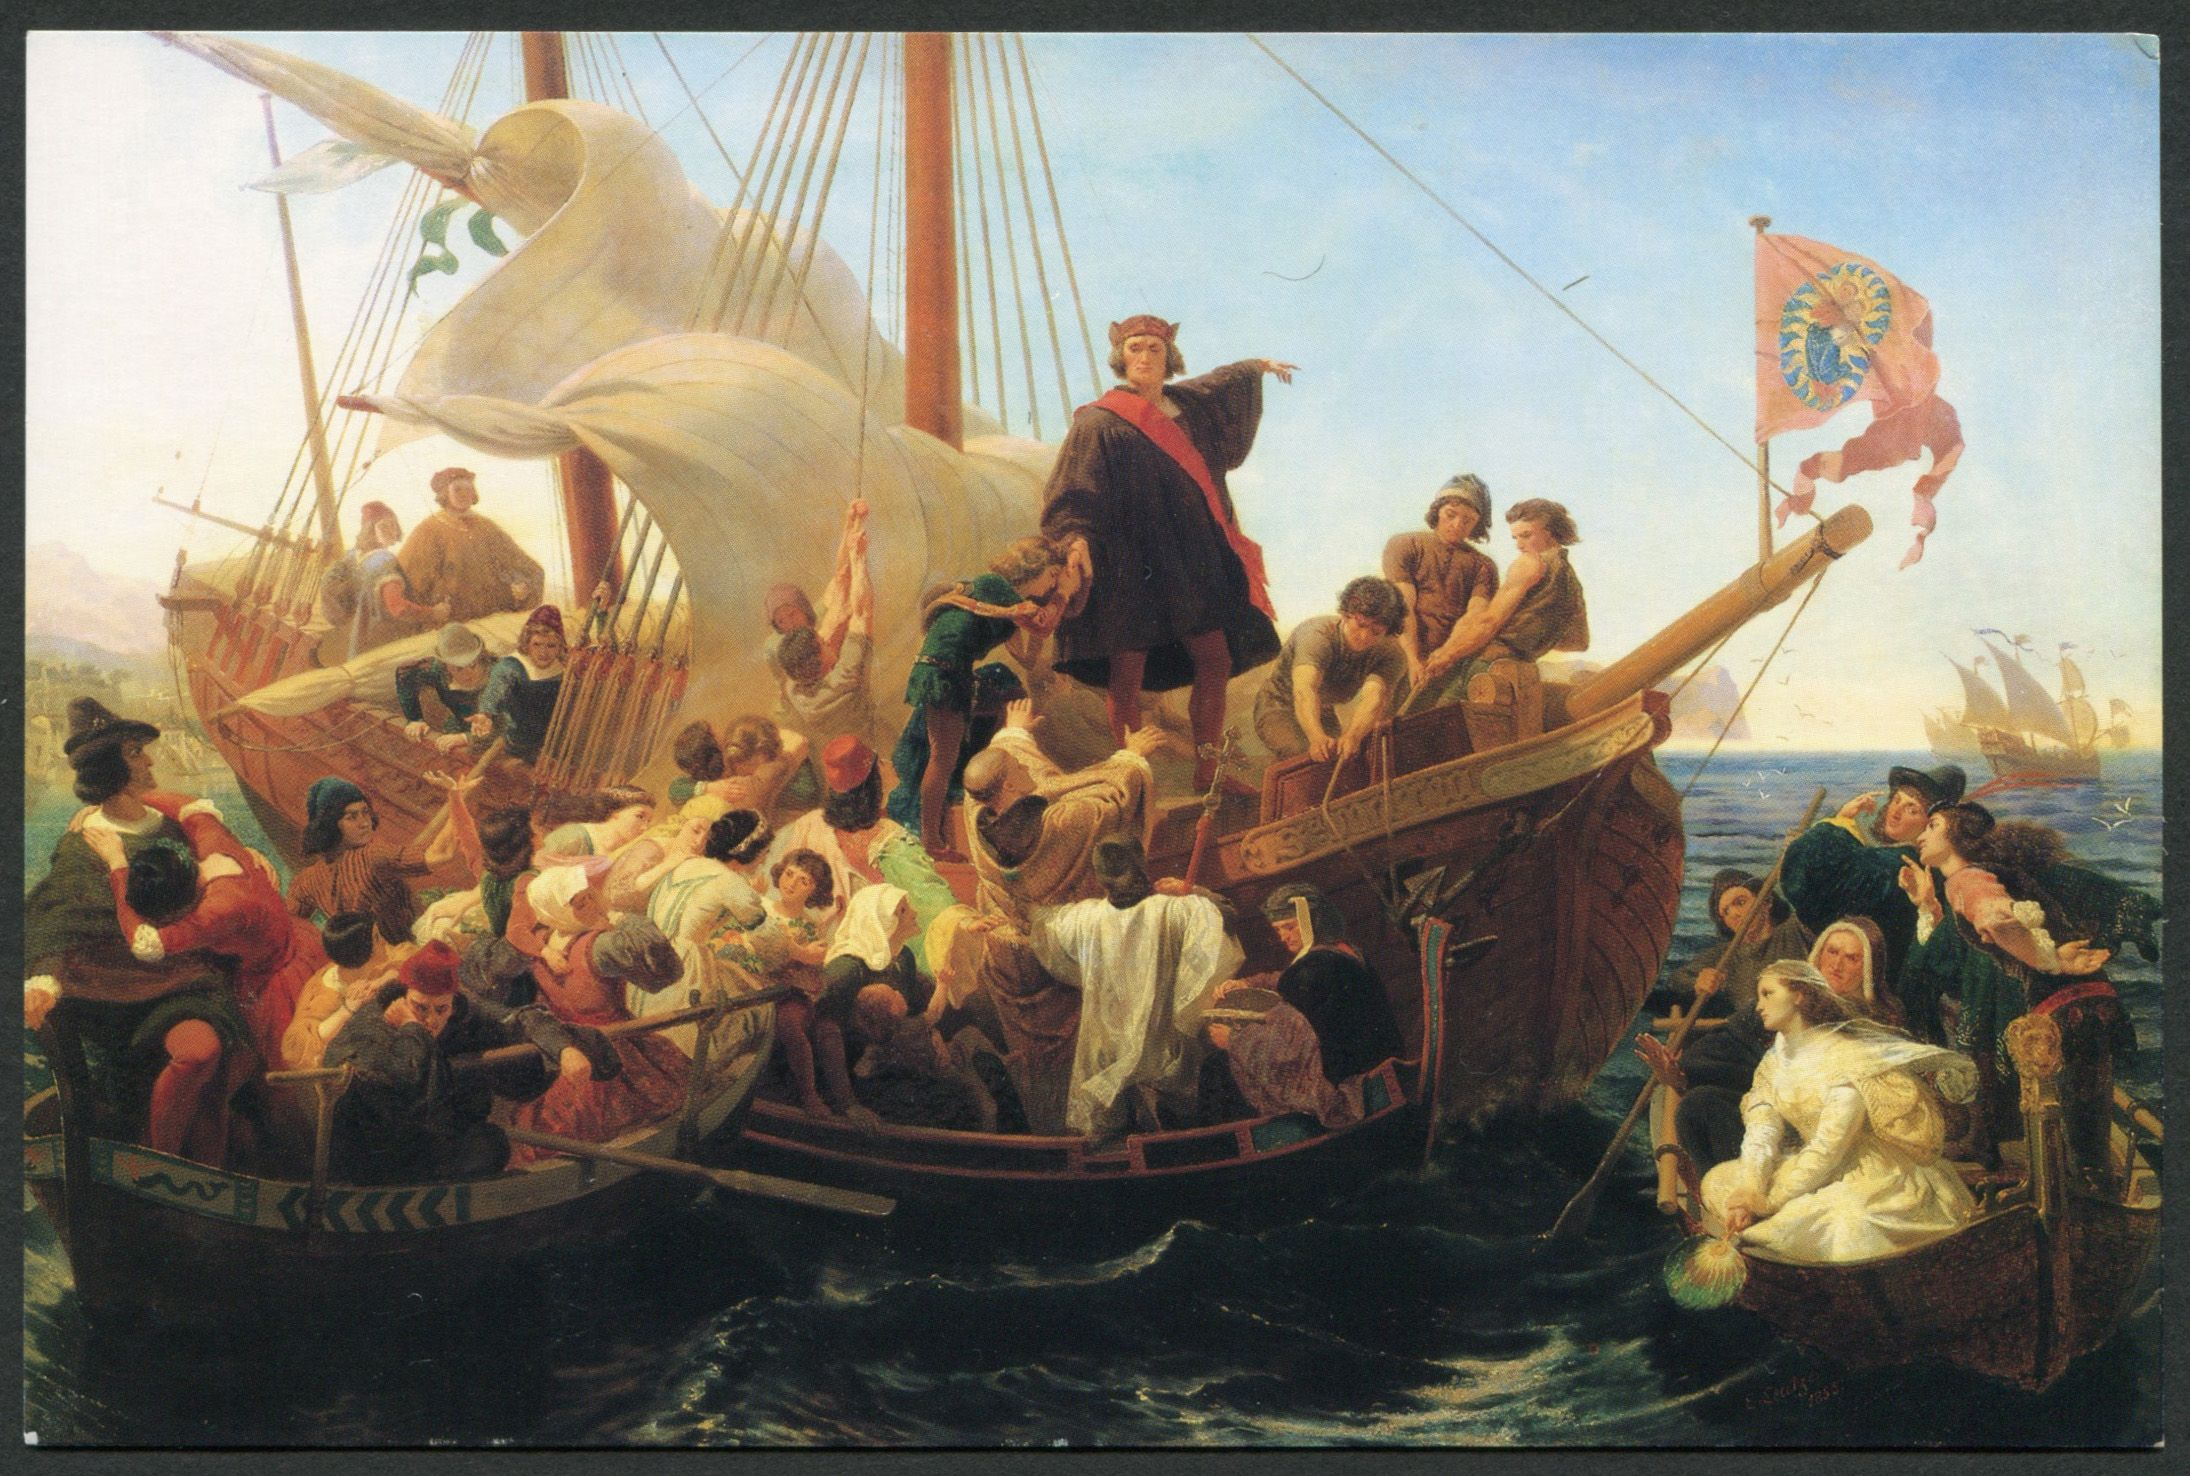 Postcard Showing The Painting Departure Of Columbus From